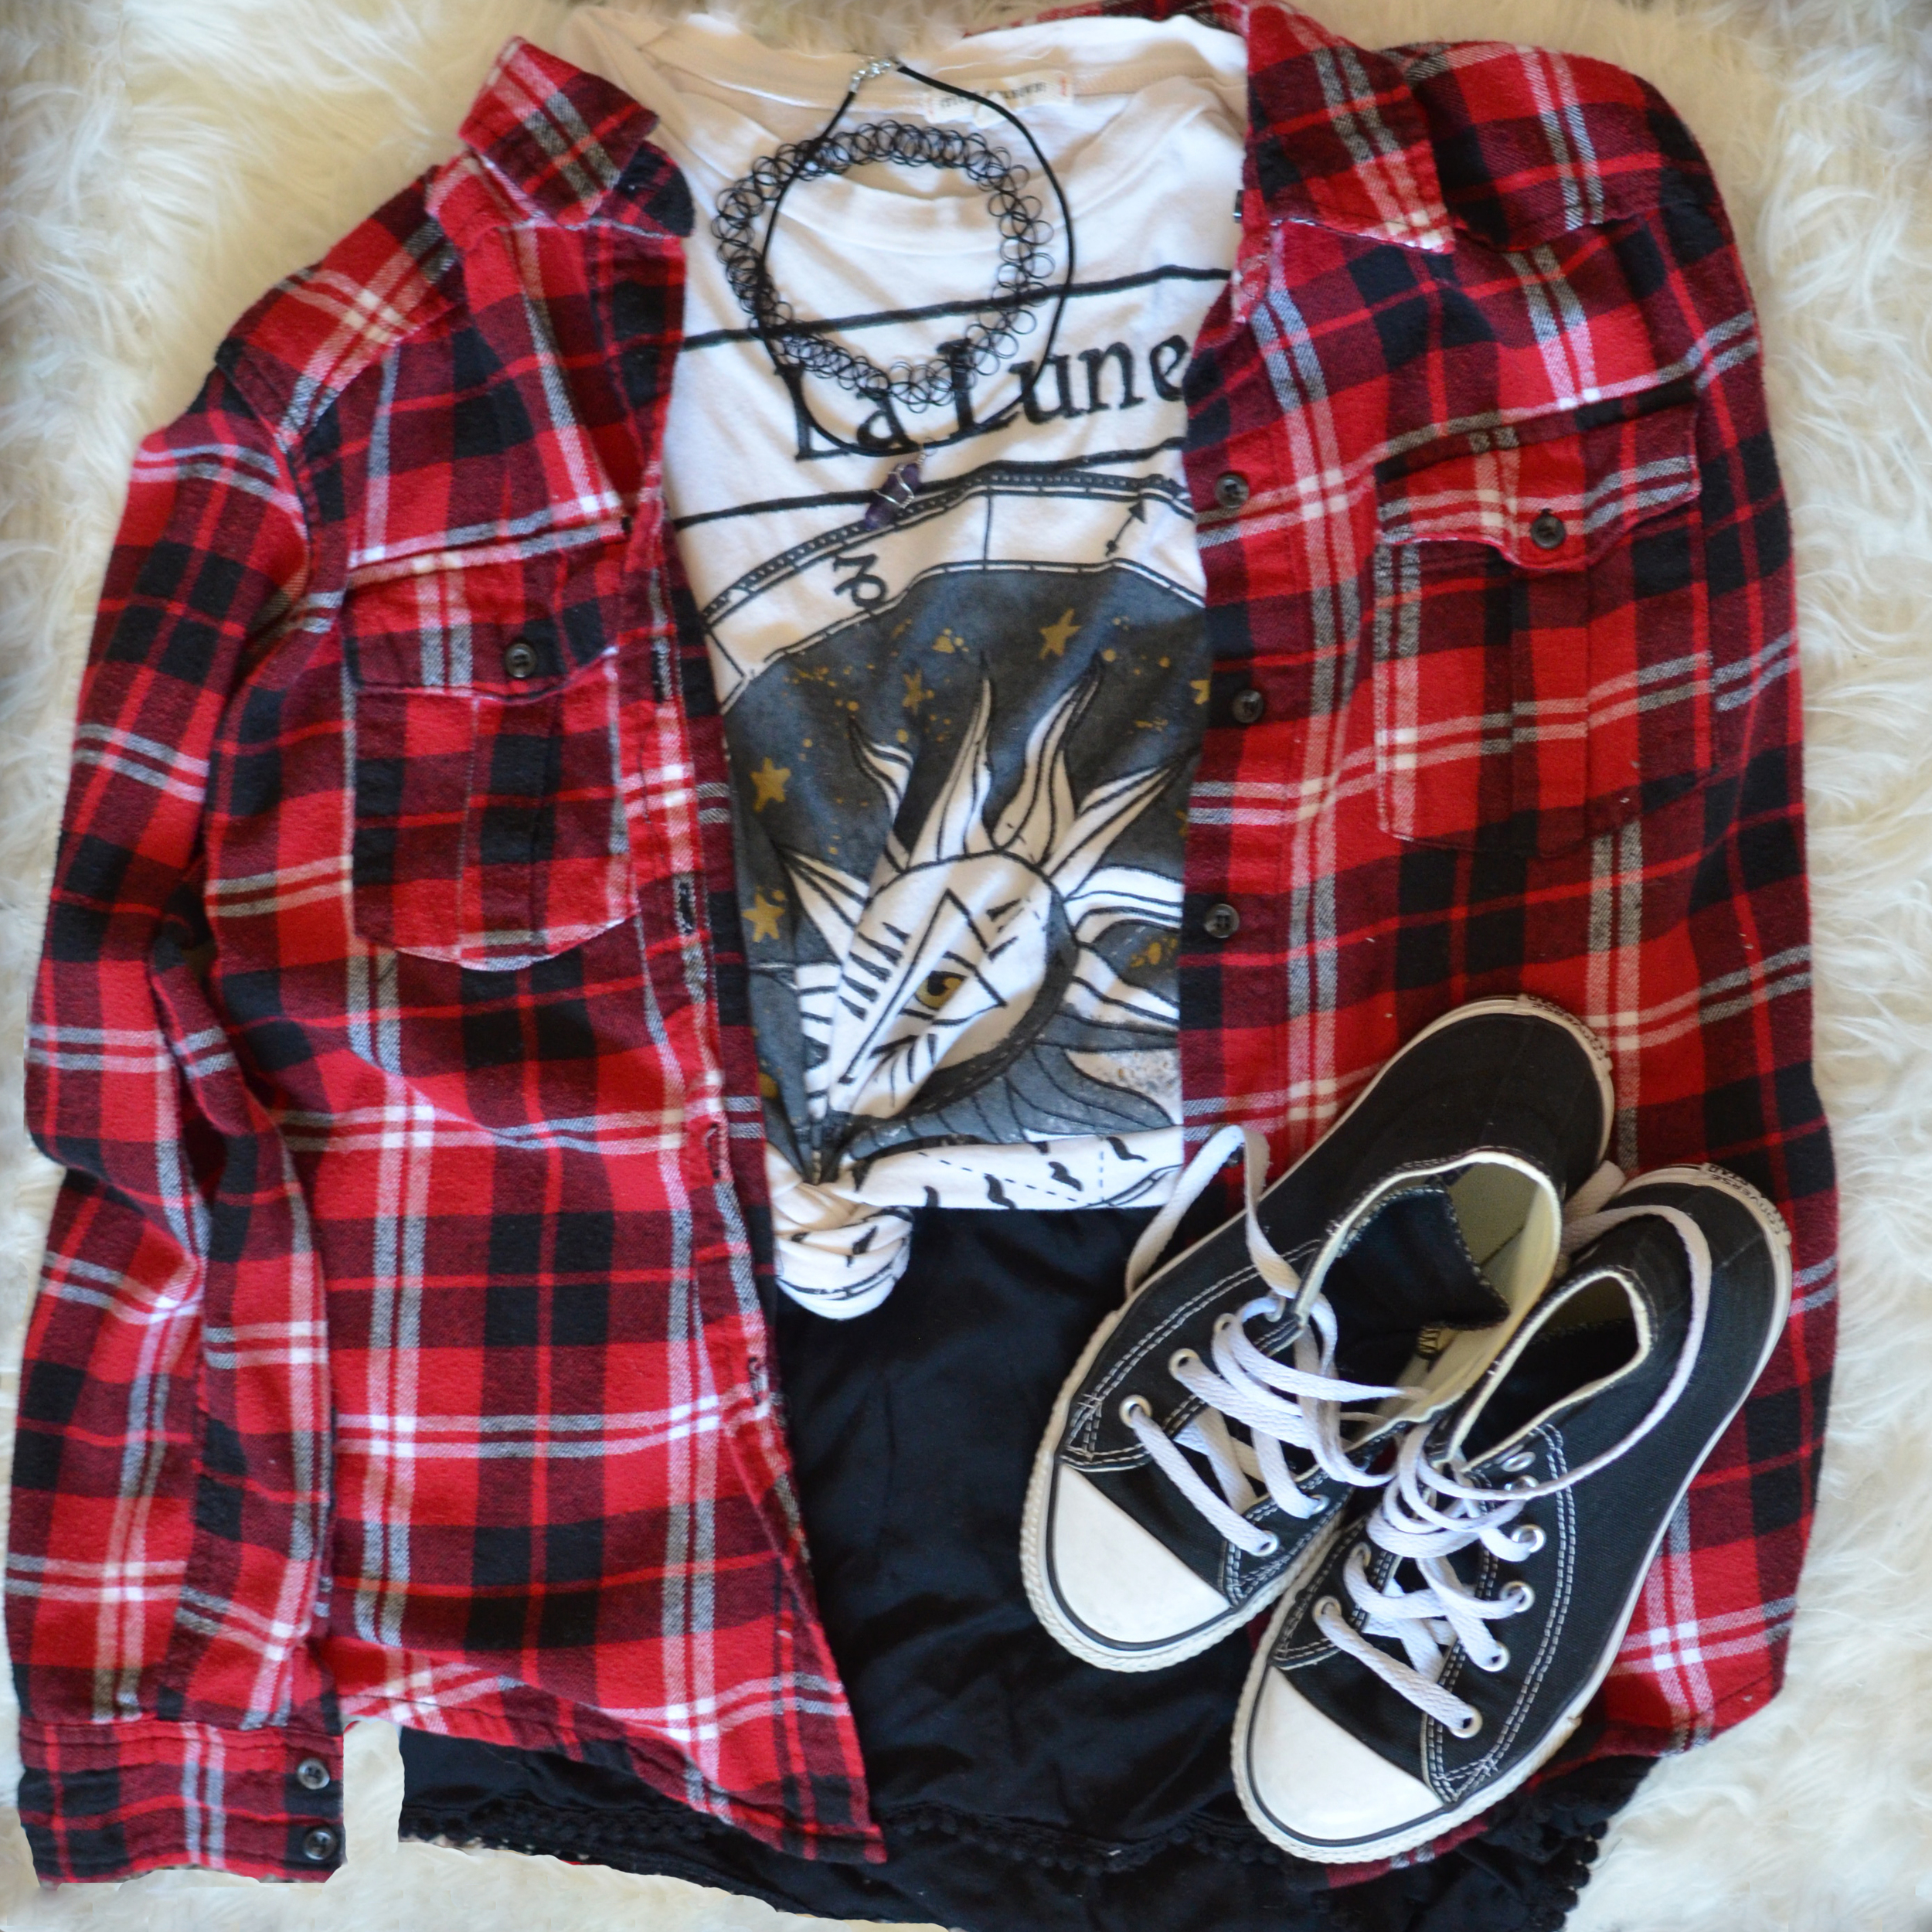 Flannel/Ebay, Top/Buffalo exchange, Bottoms/Abercrombie & fitch, Shoes/Converse, Chokers/DIY